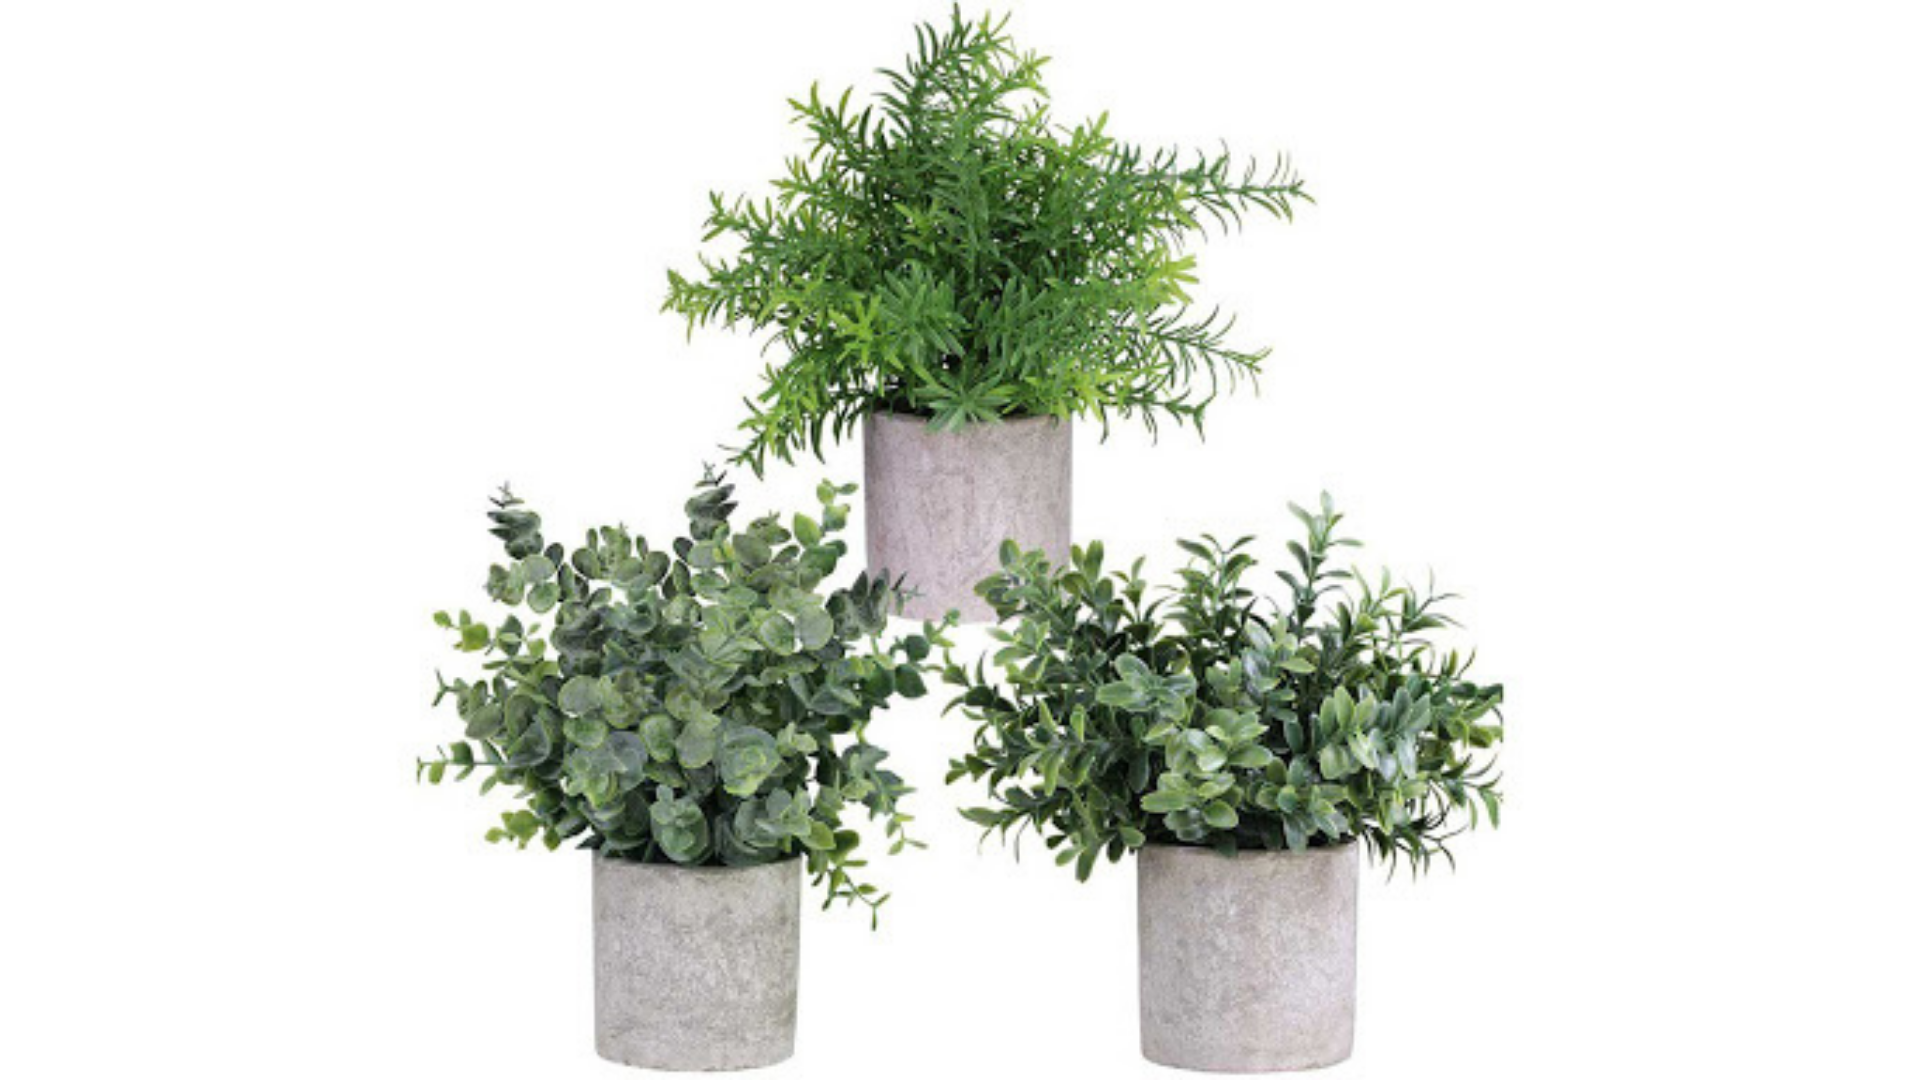 Three artificial potted plants on a white background.